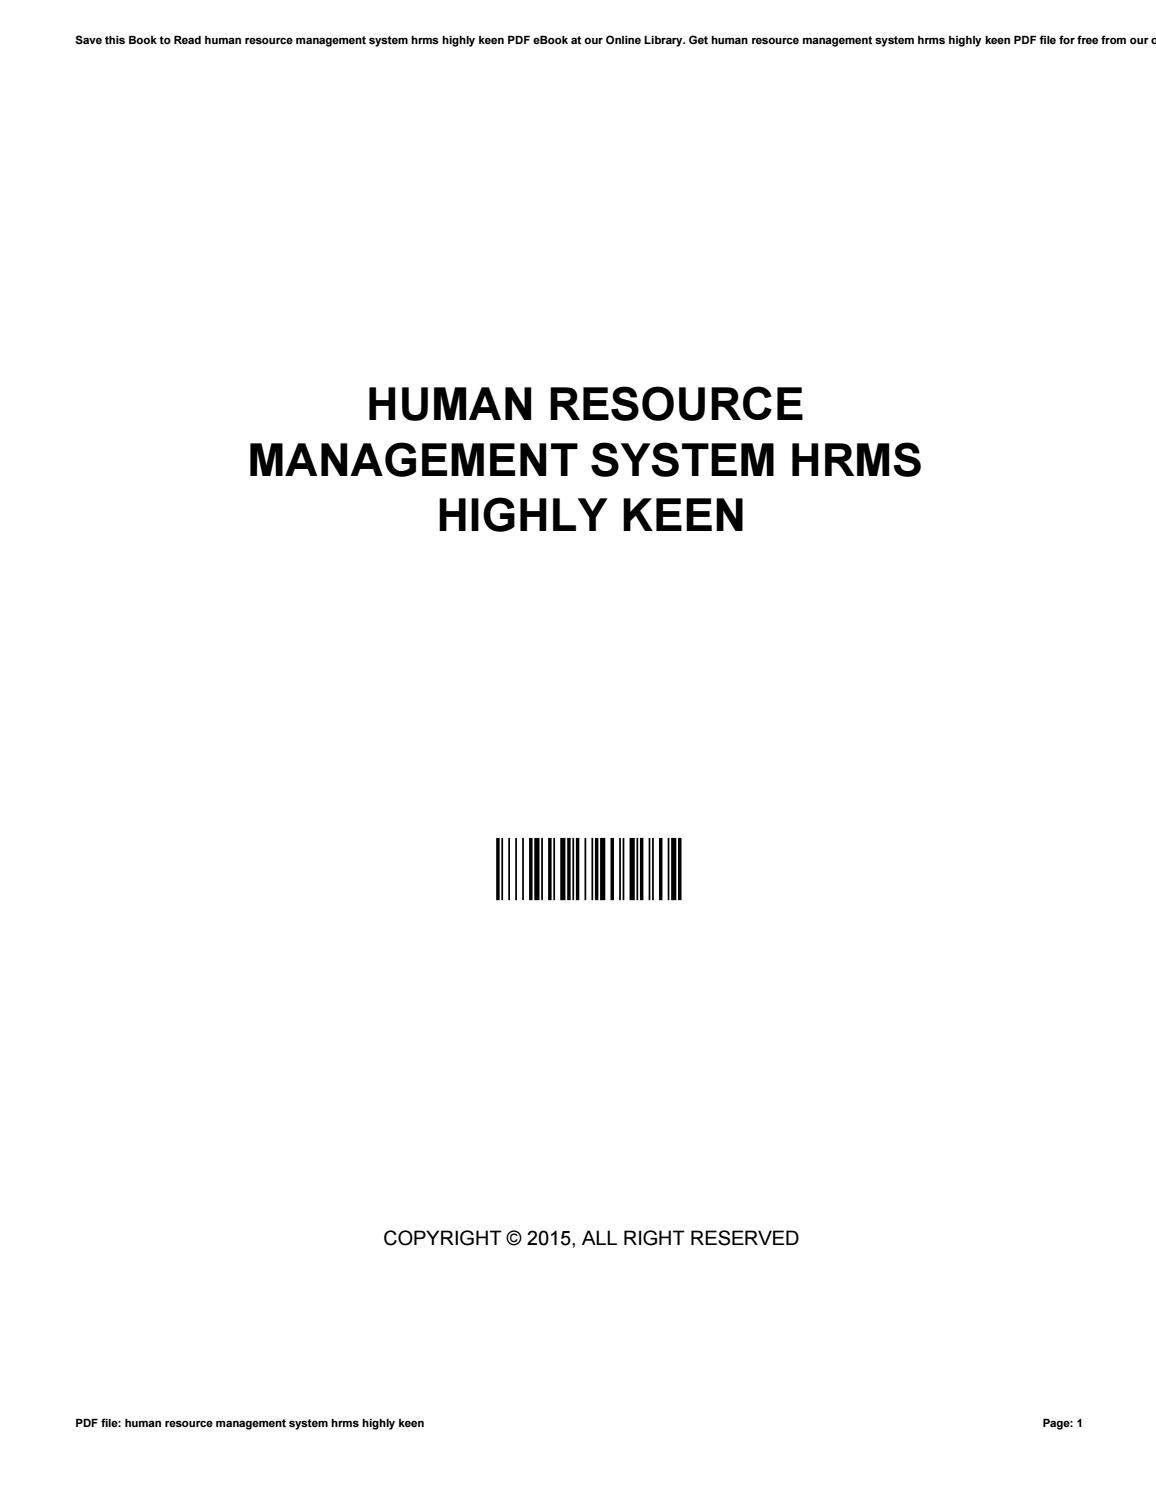 Human resource management system hrms highly keen by